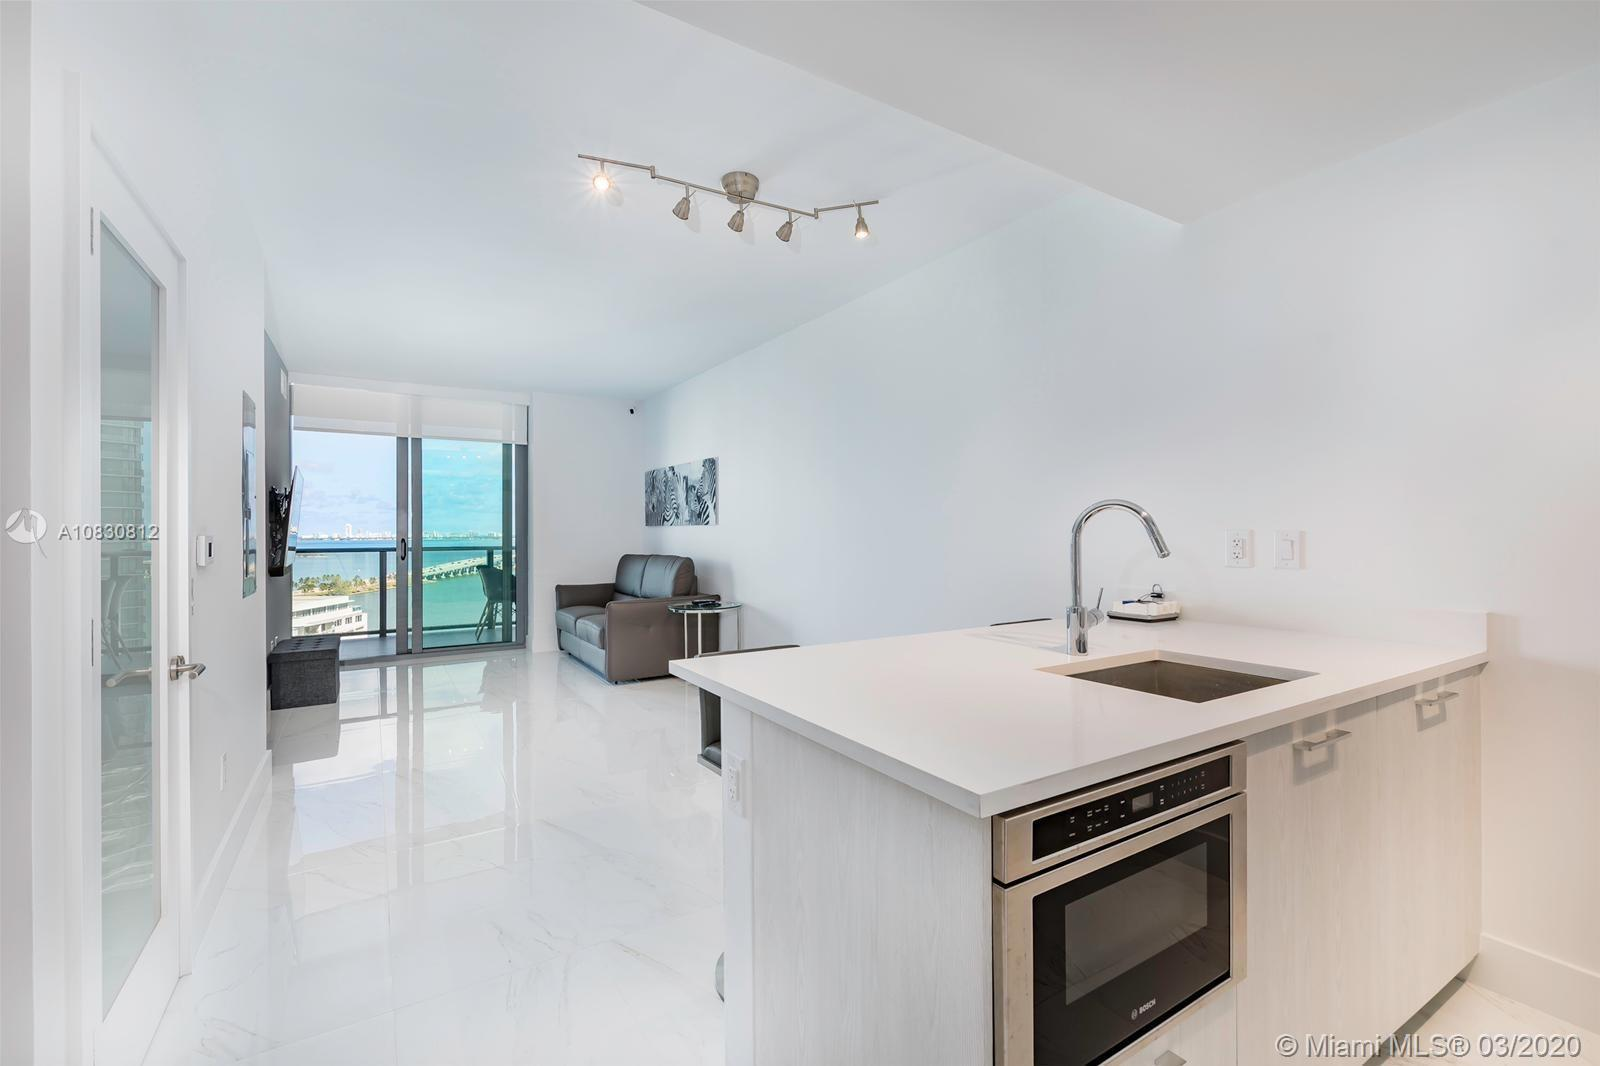 Beautiful one bedroom with one bathroom unit with amazing views of Downtown and Miami Beach skyline